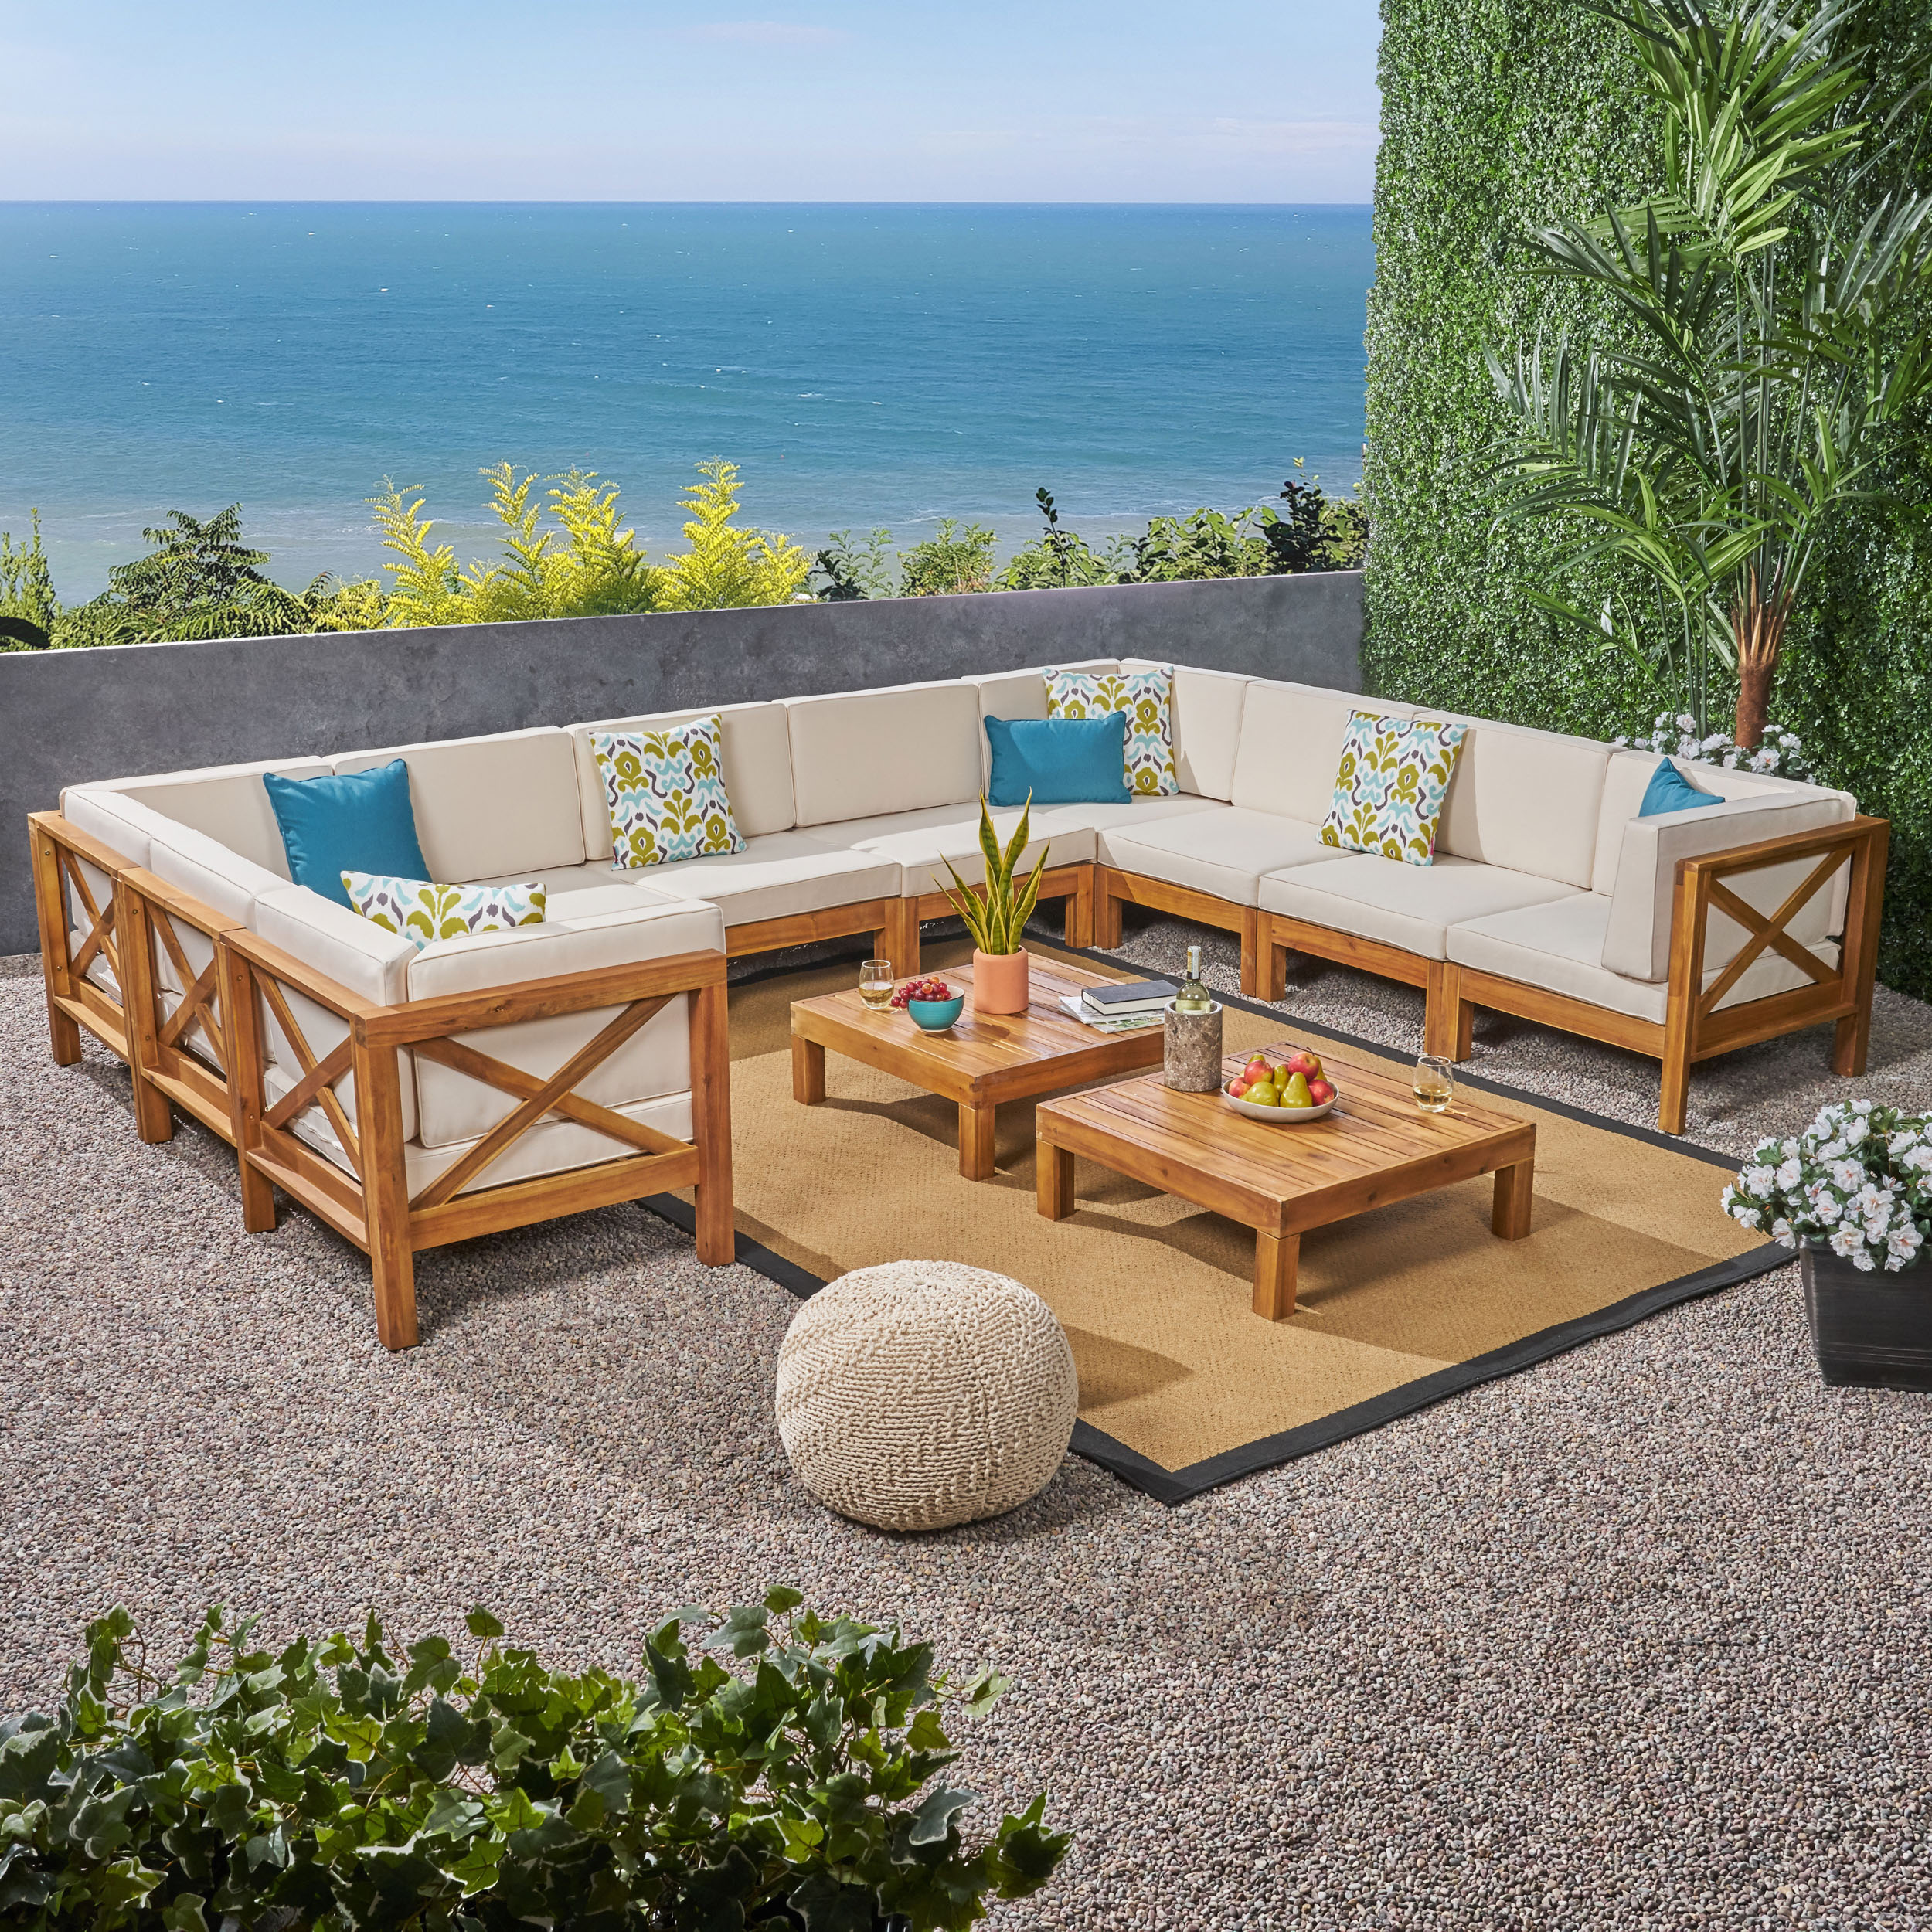 Elisha Outdoor 12 Piece Acacia Wood Sectional Sofa Set with Cushions and Coffee Tables, Gray, White